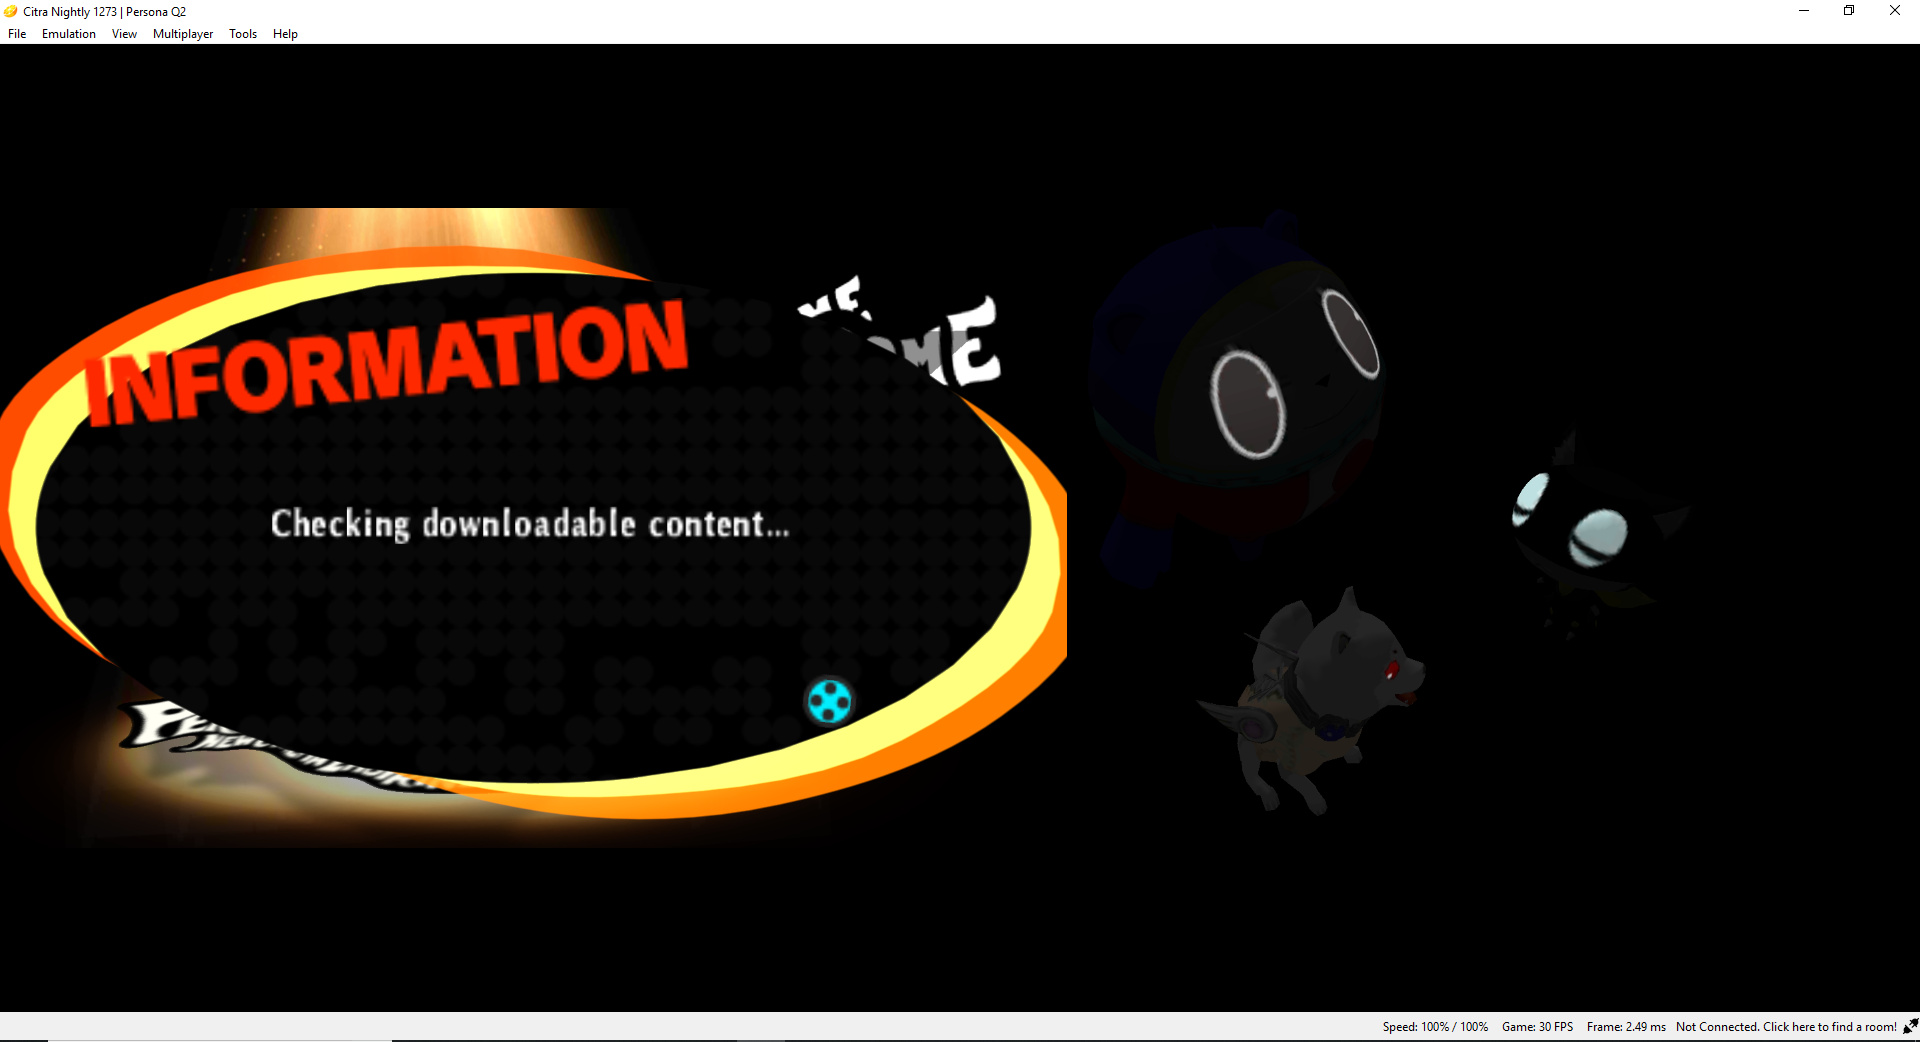 Persona Q2 stuck at Checking downloadable content - Citra Support